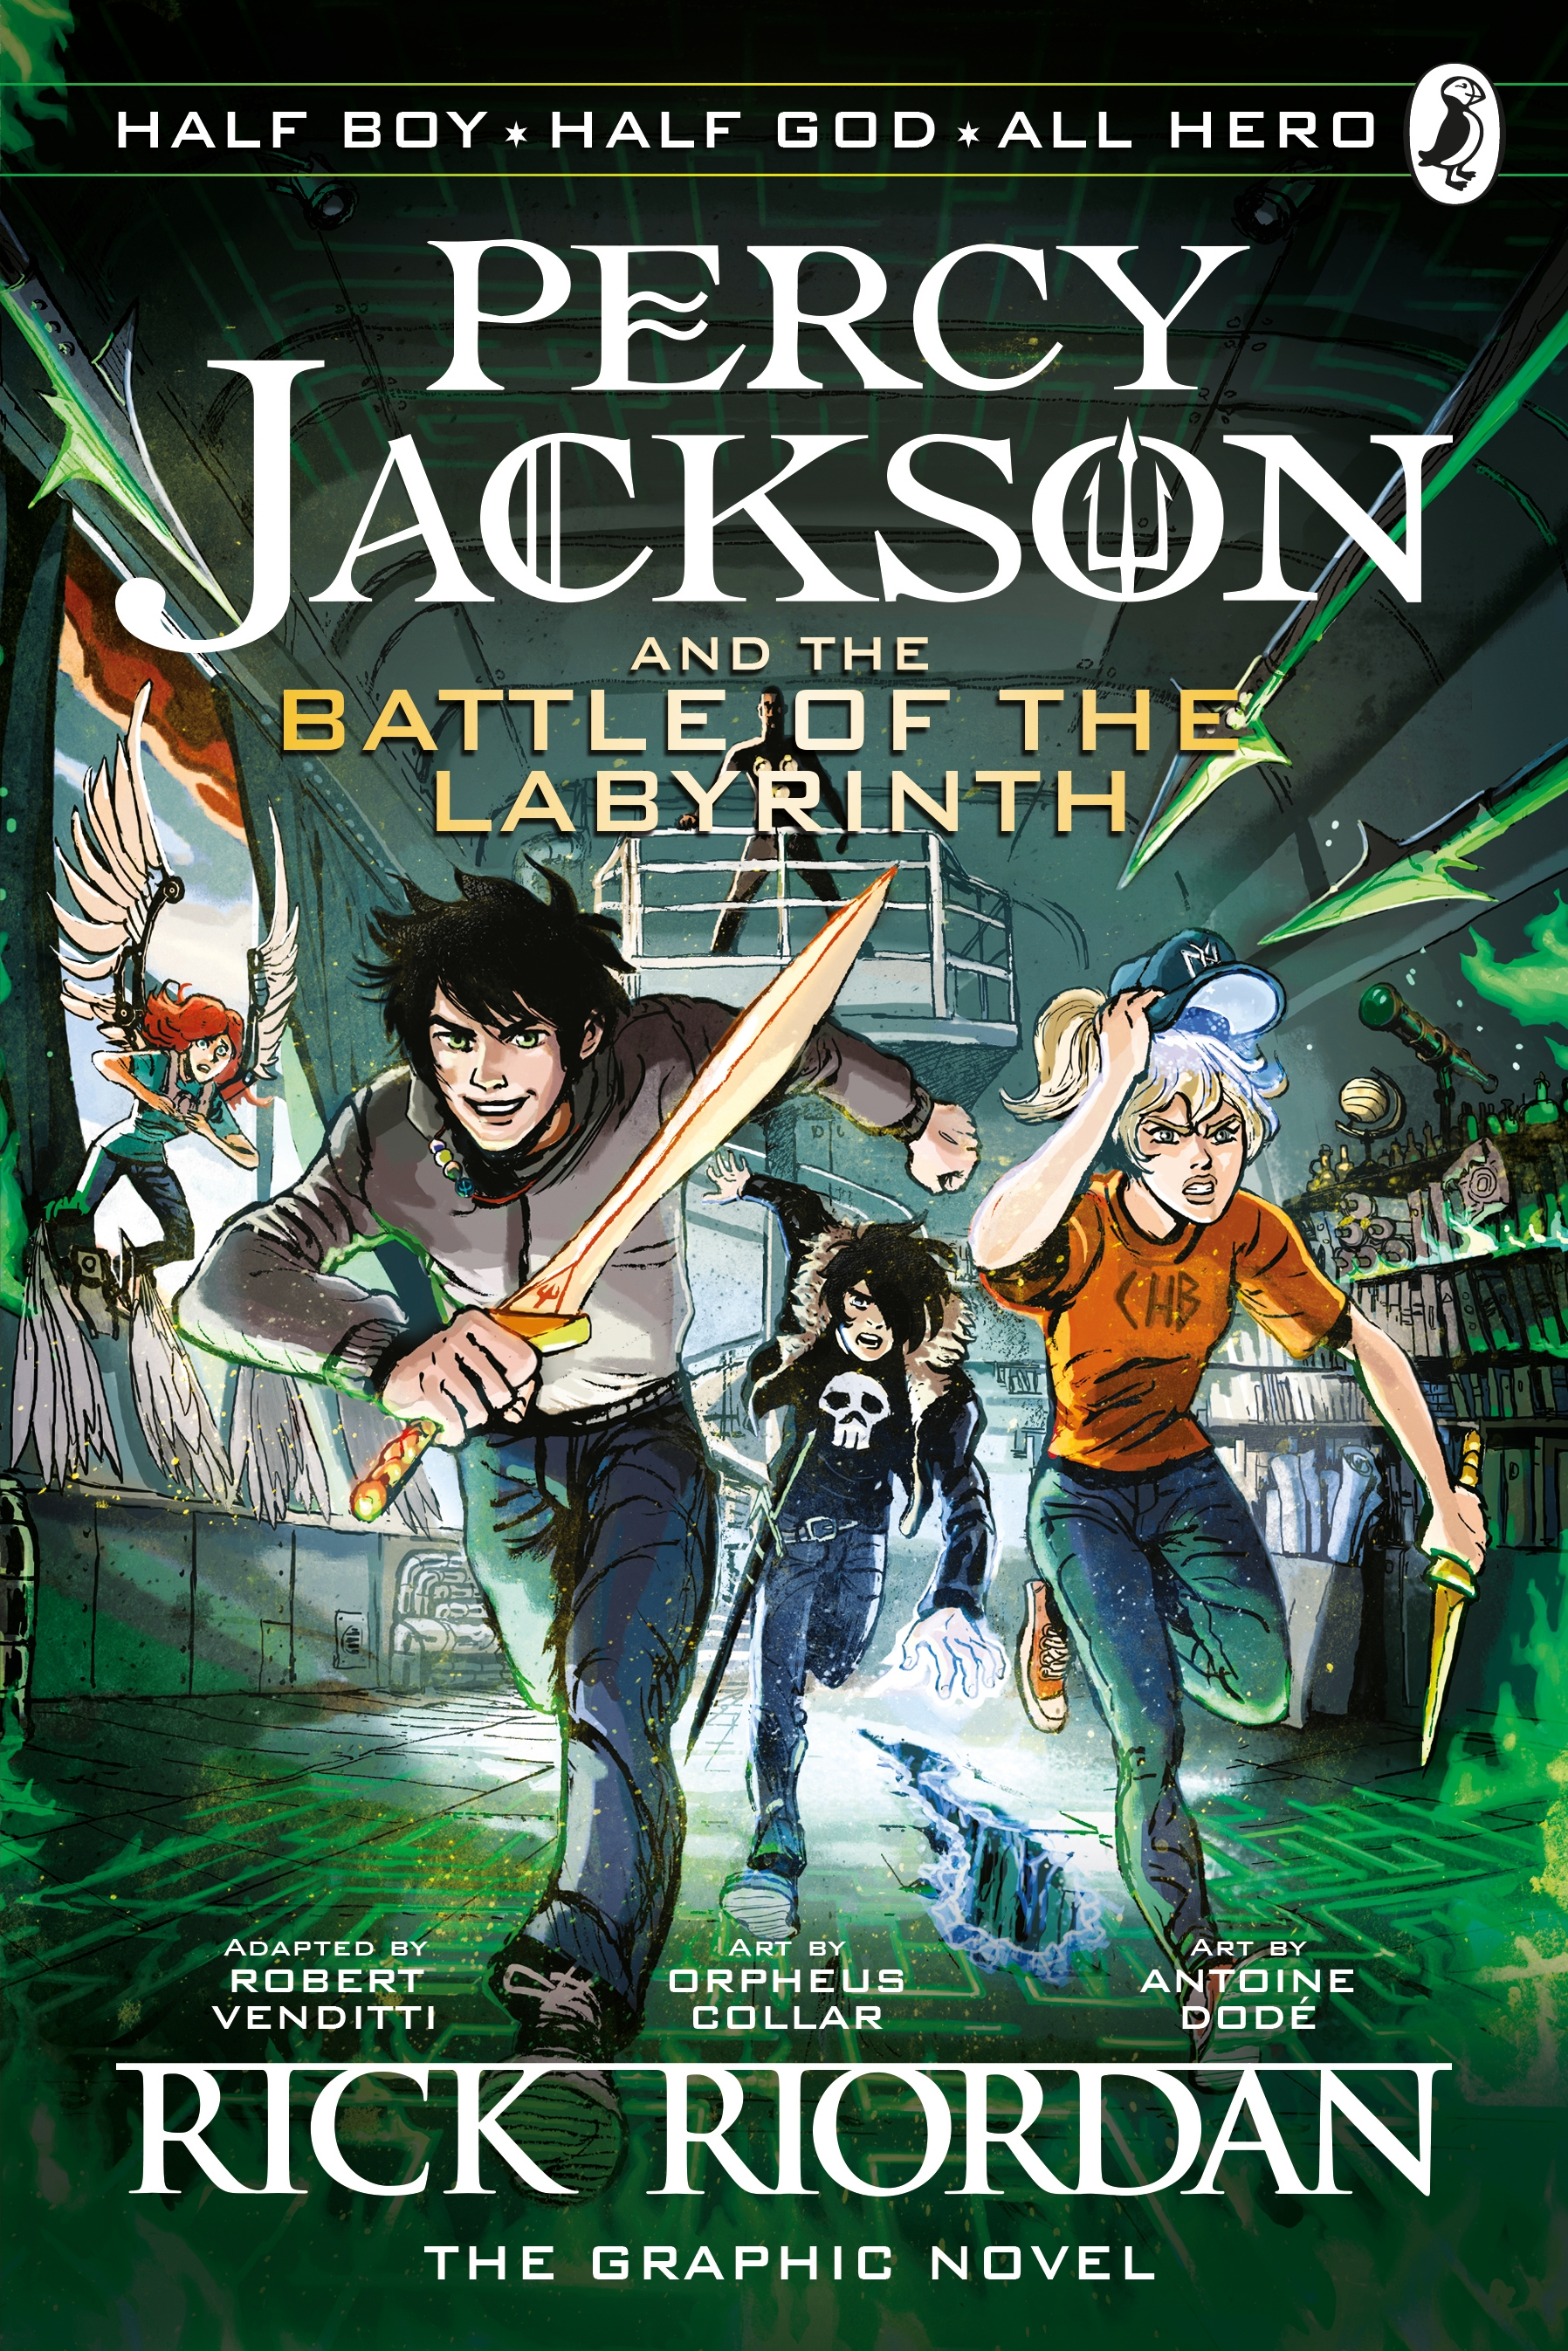 The Battle of the Labyrinth: The Graphic Novel by Robert Venditti, Rick Riordan